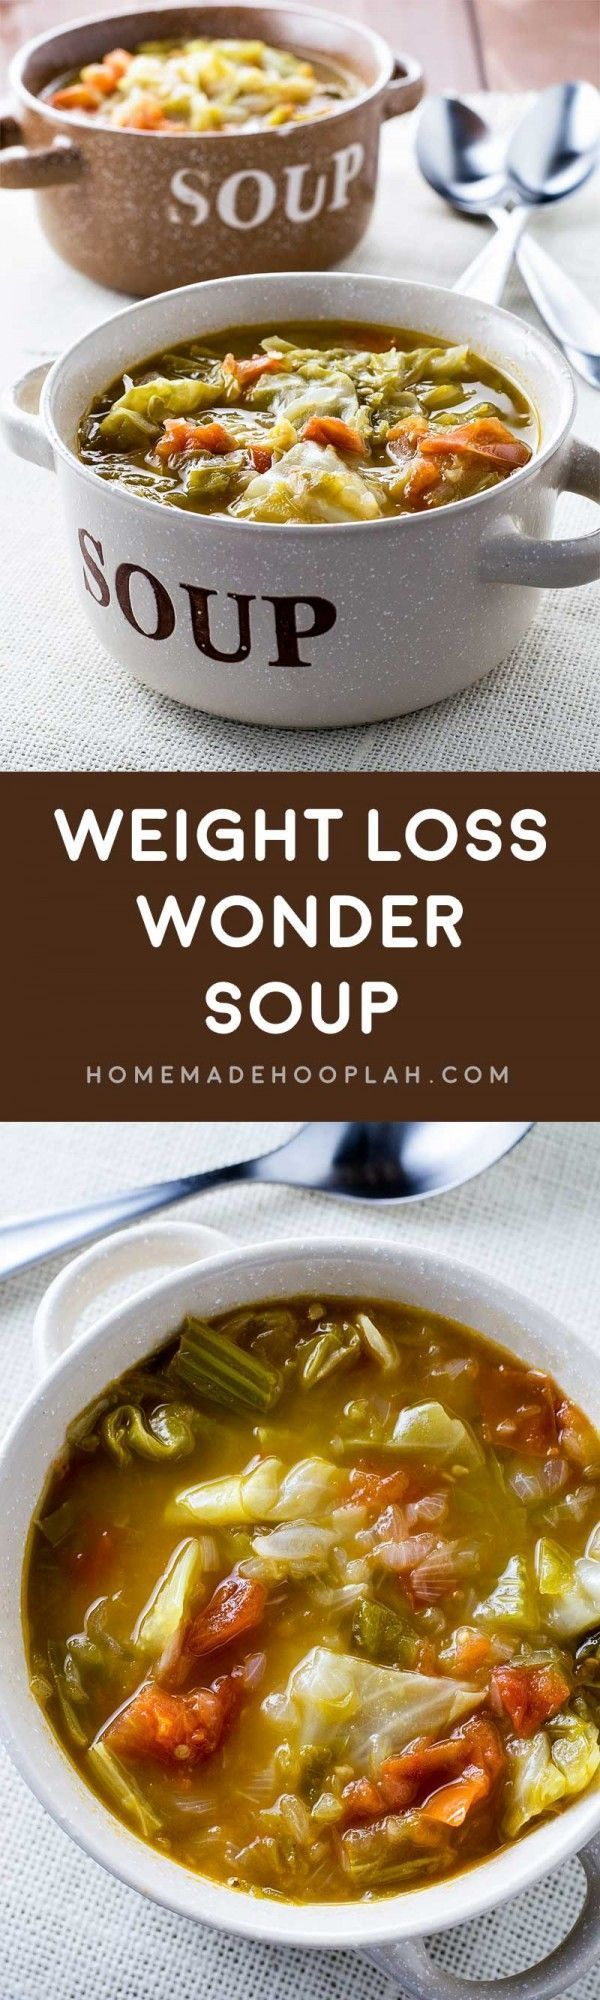 Weight Loss Wonder Soup! A filling and healthy wonder soup to assist with any diet. Vegetarian, gluten free, vegan, paleo - this combination of cooked veggies will leave you feeling full enough to get past the hunger pangs.   HomemadeHooplah.com